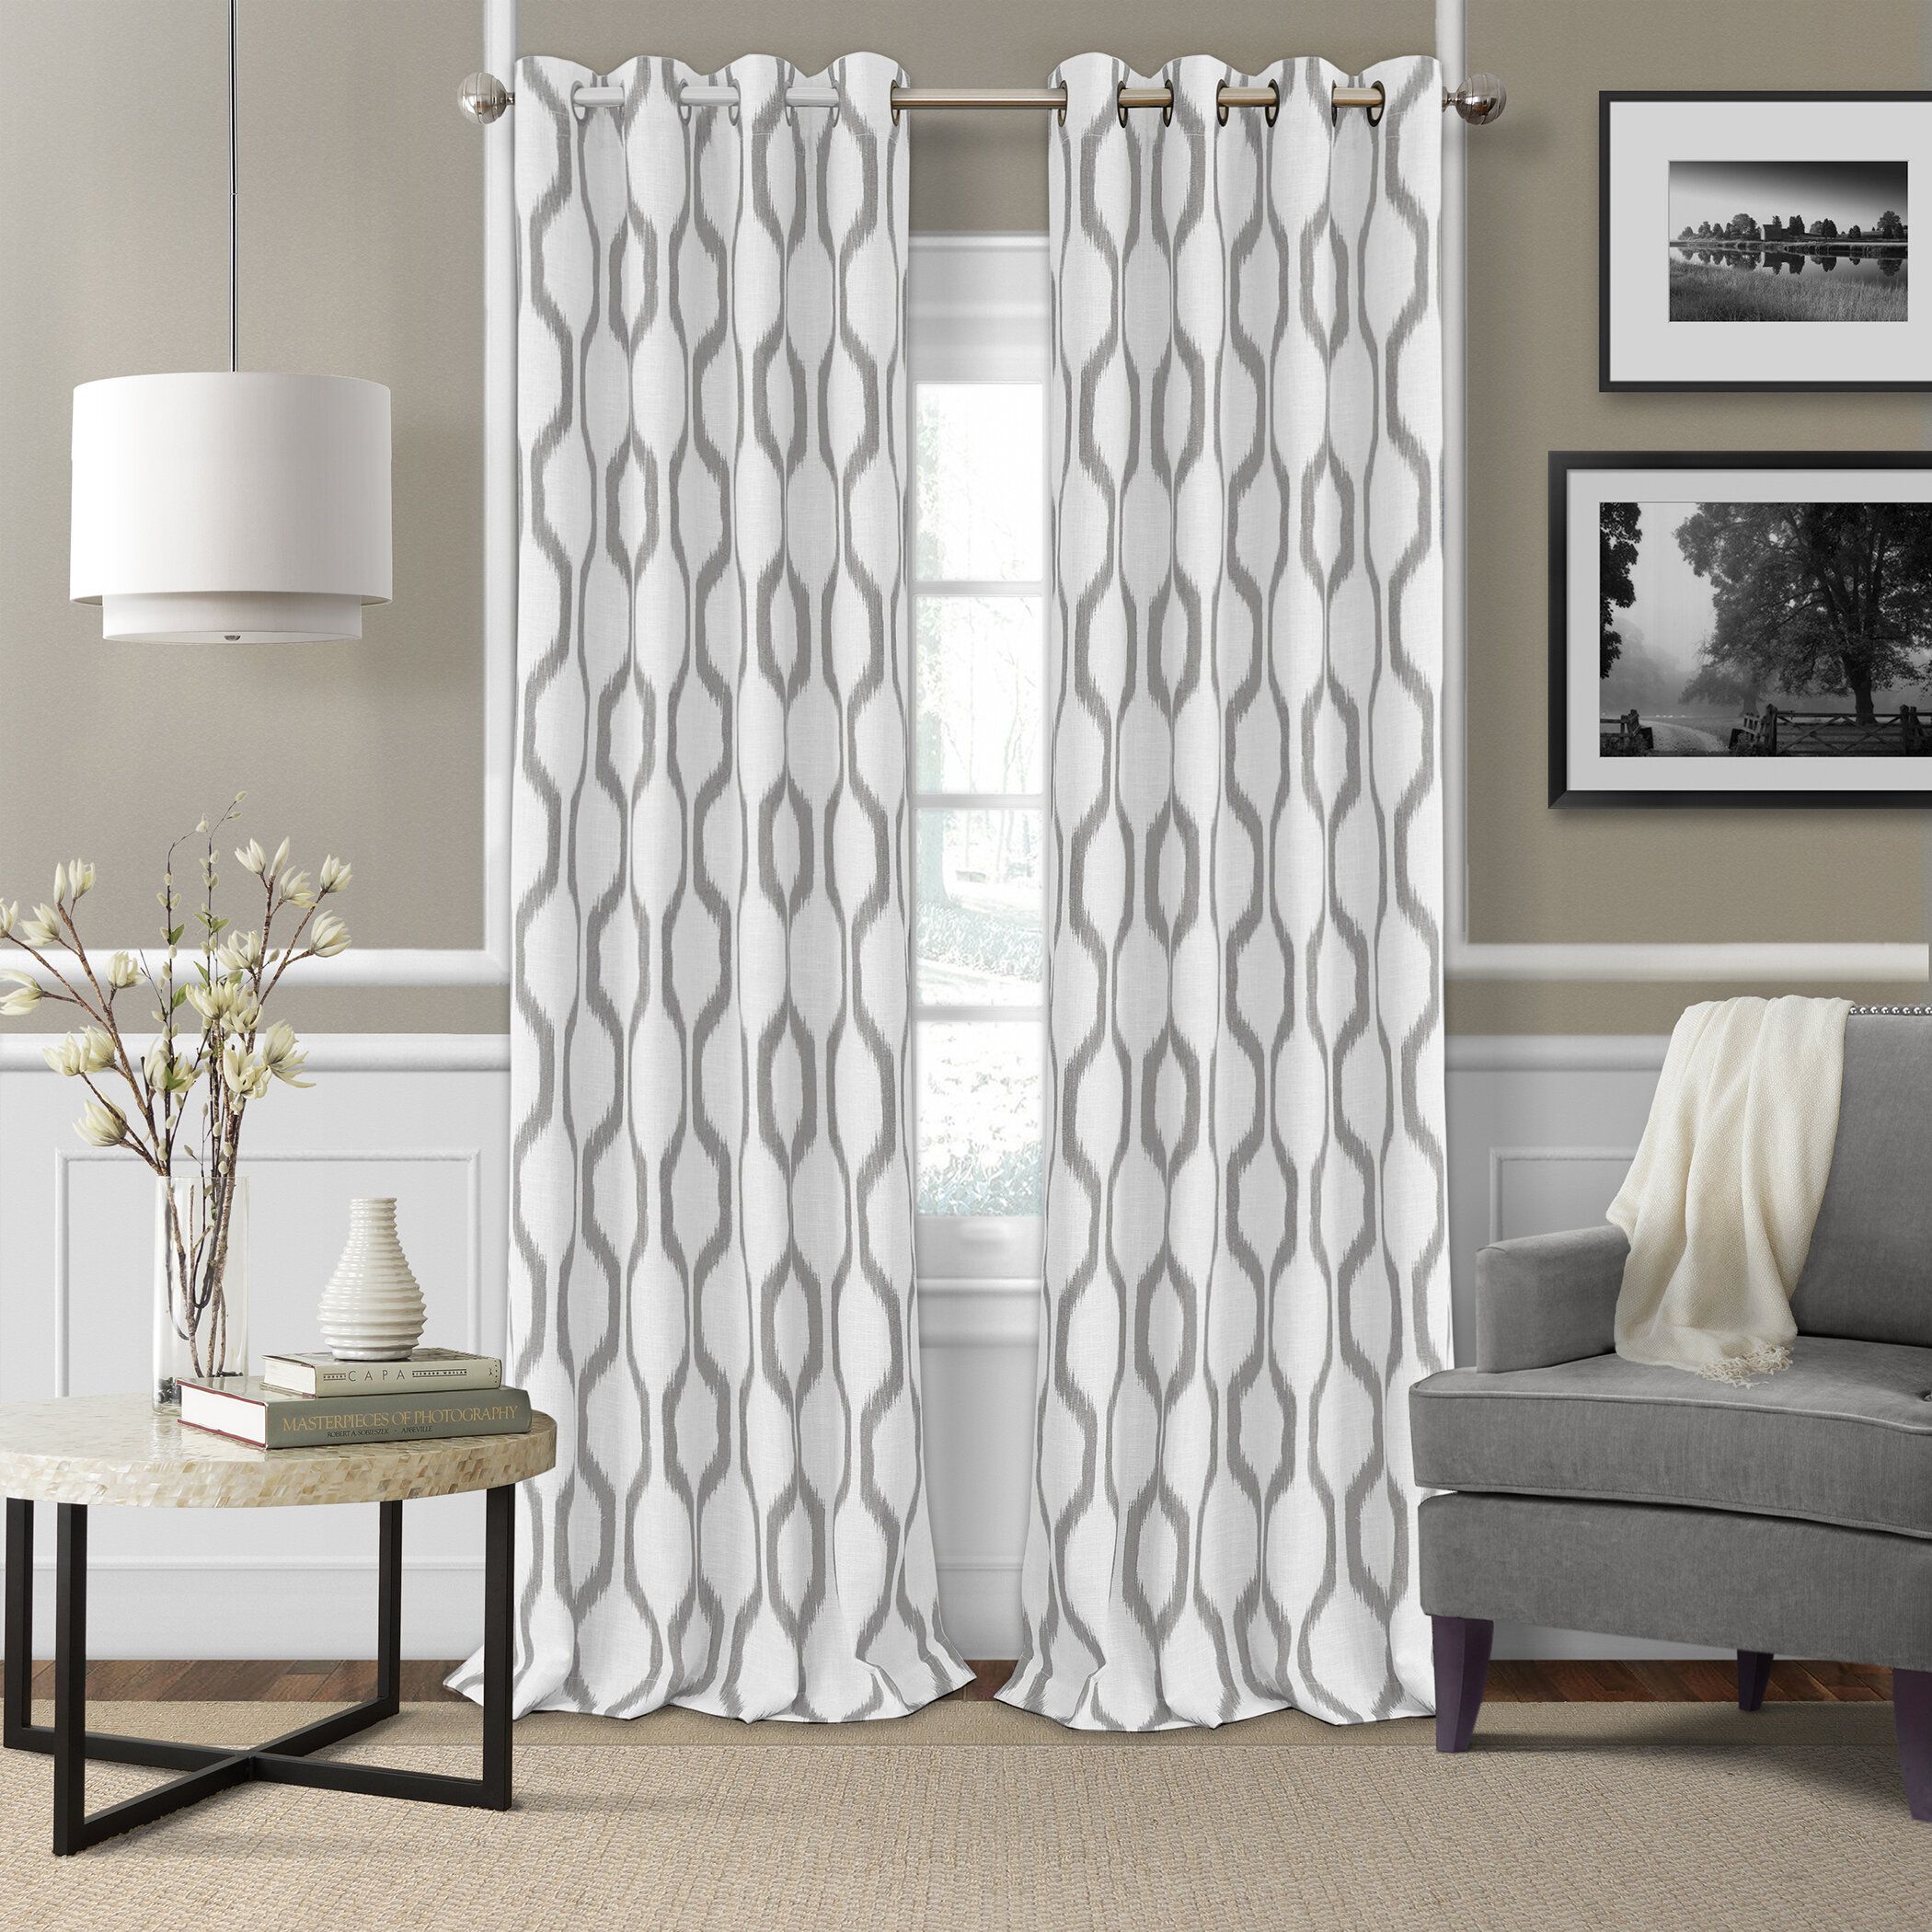 free product curtain panel geometric aurora reverse home blackout drapes garden trellis silk today overstock faux shipping x